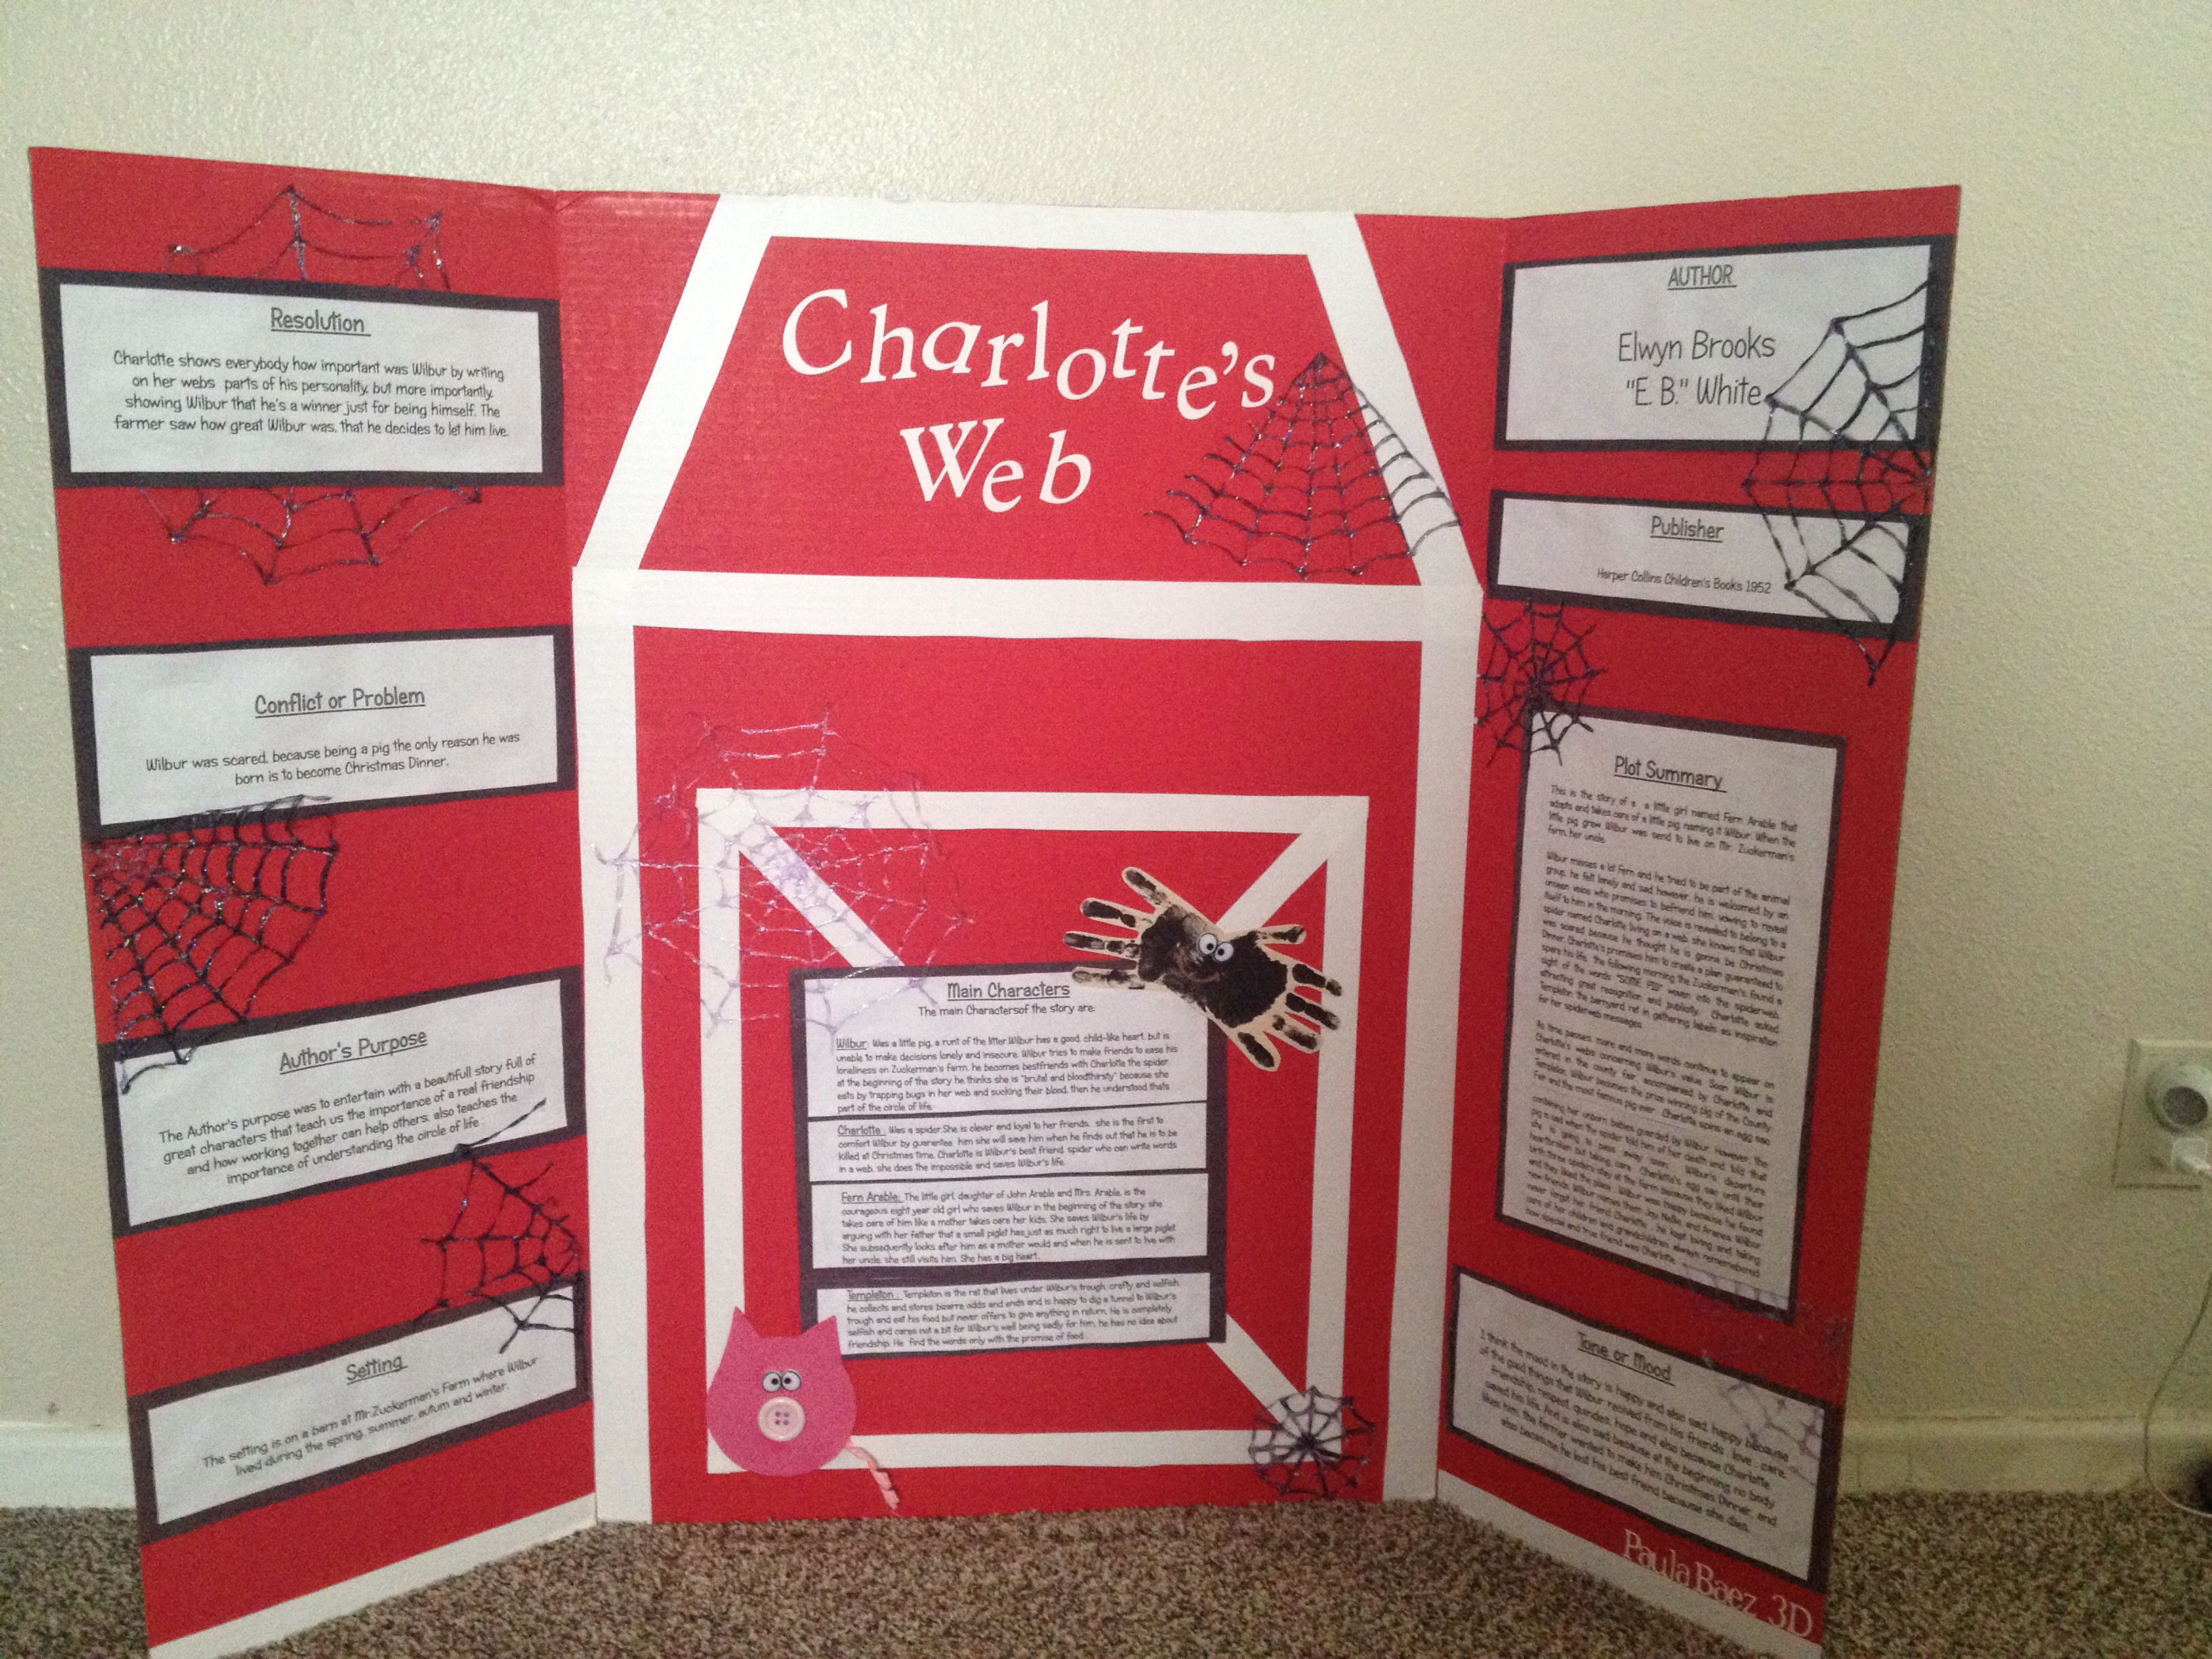 what did charlotte write in her web